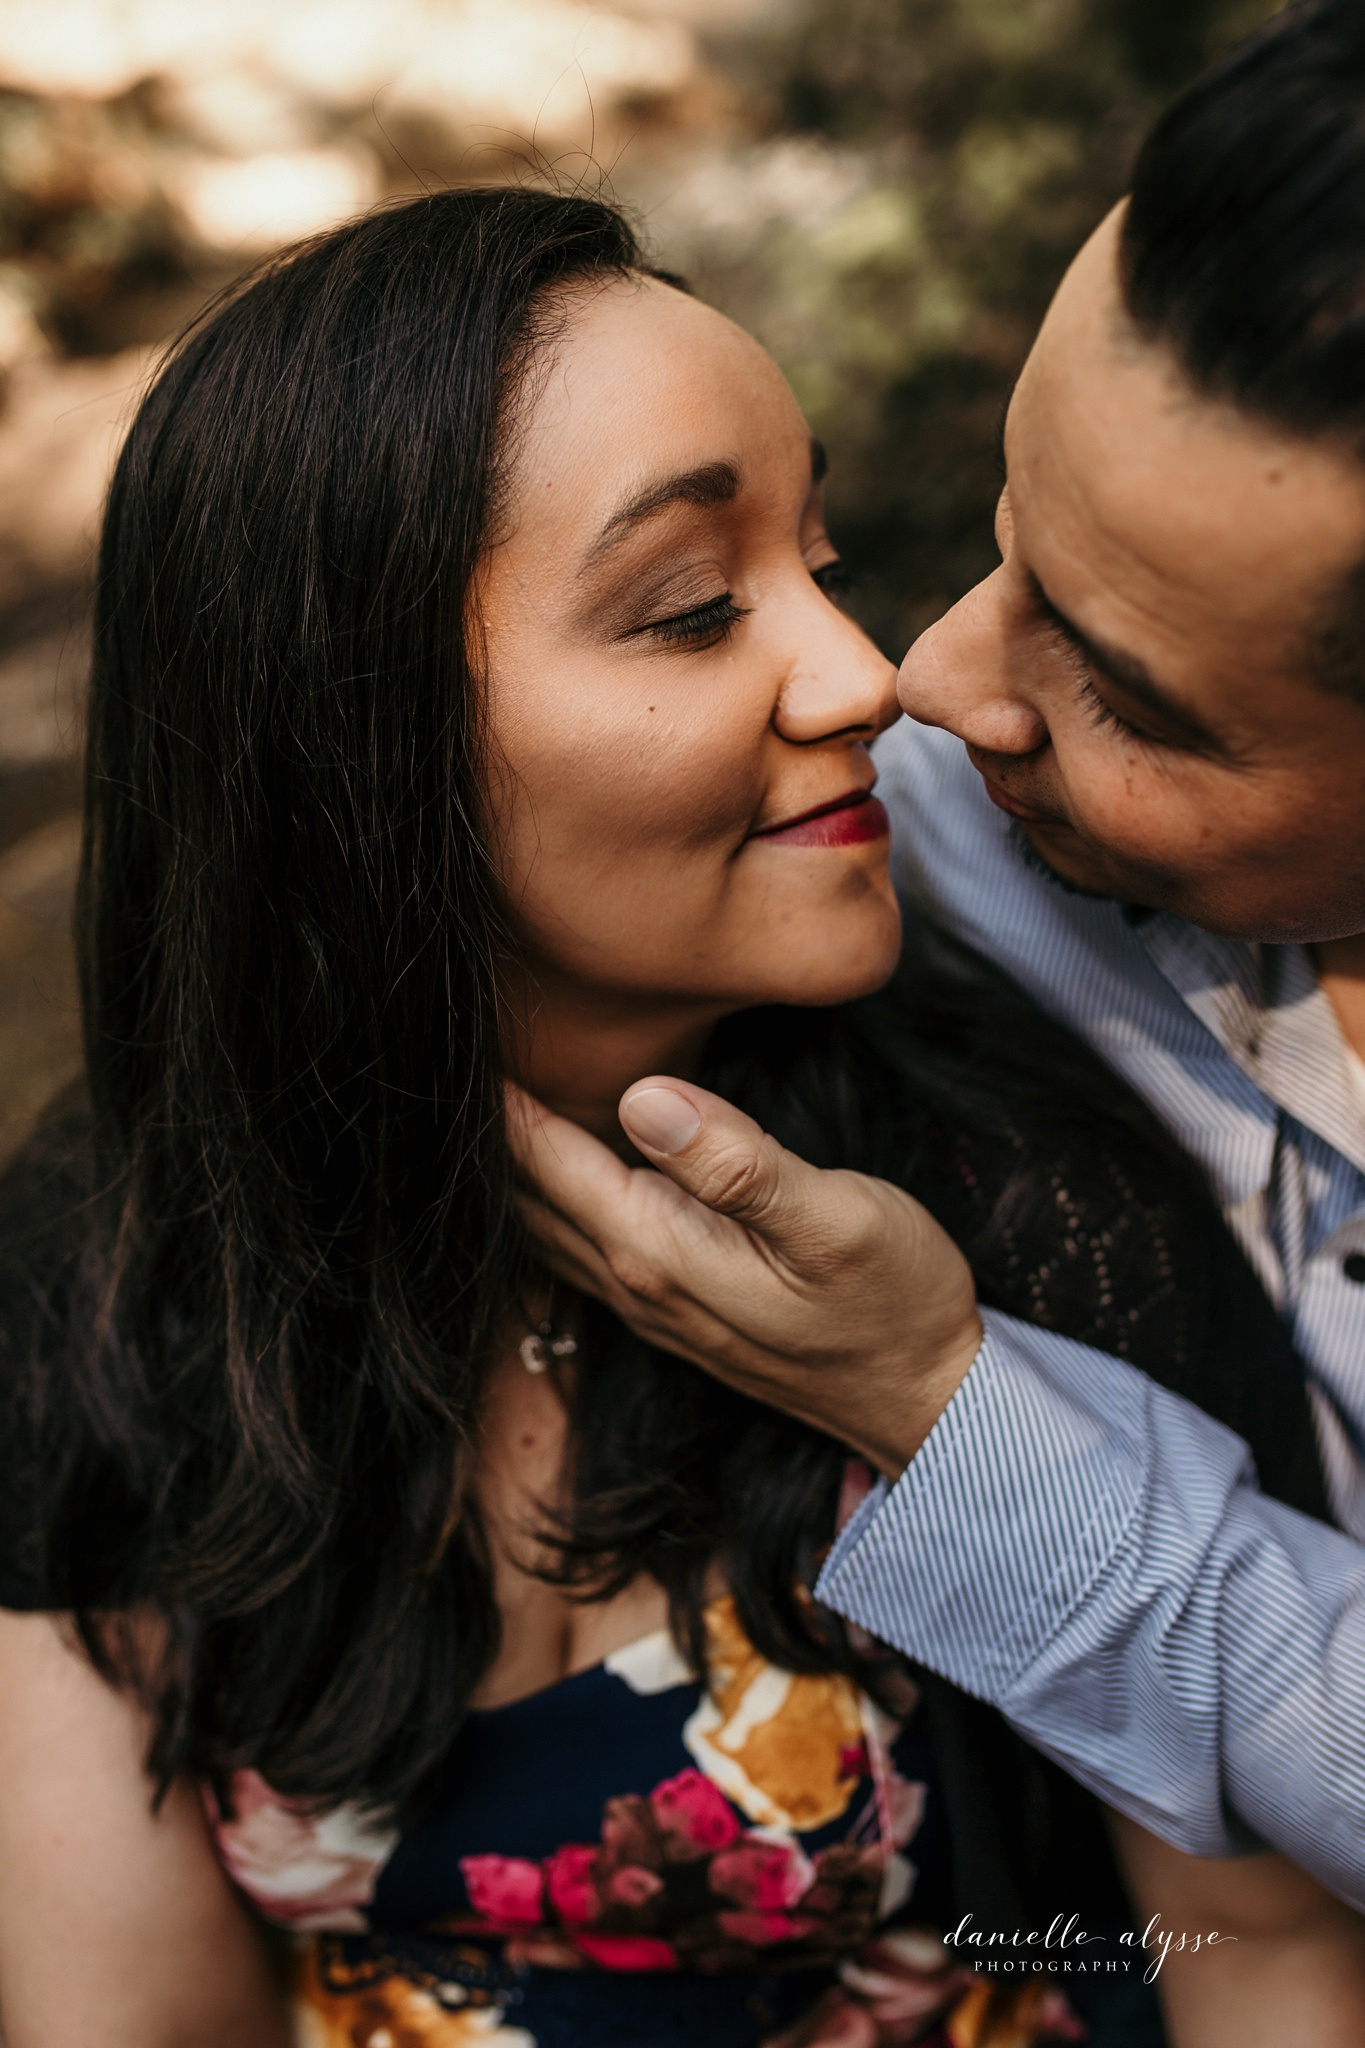 180425_engagement_monica_auburn_water_falls_auburn_danielle_alysse_photography_sacramento_photographer_blog_10_WEB.jpg